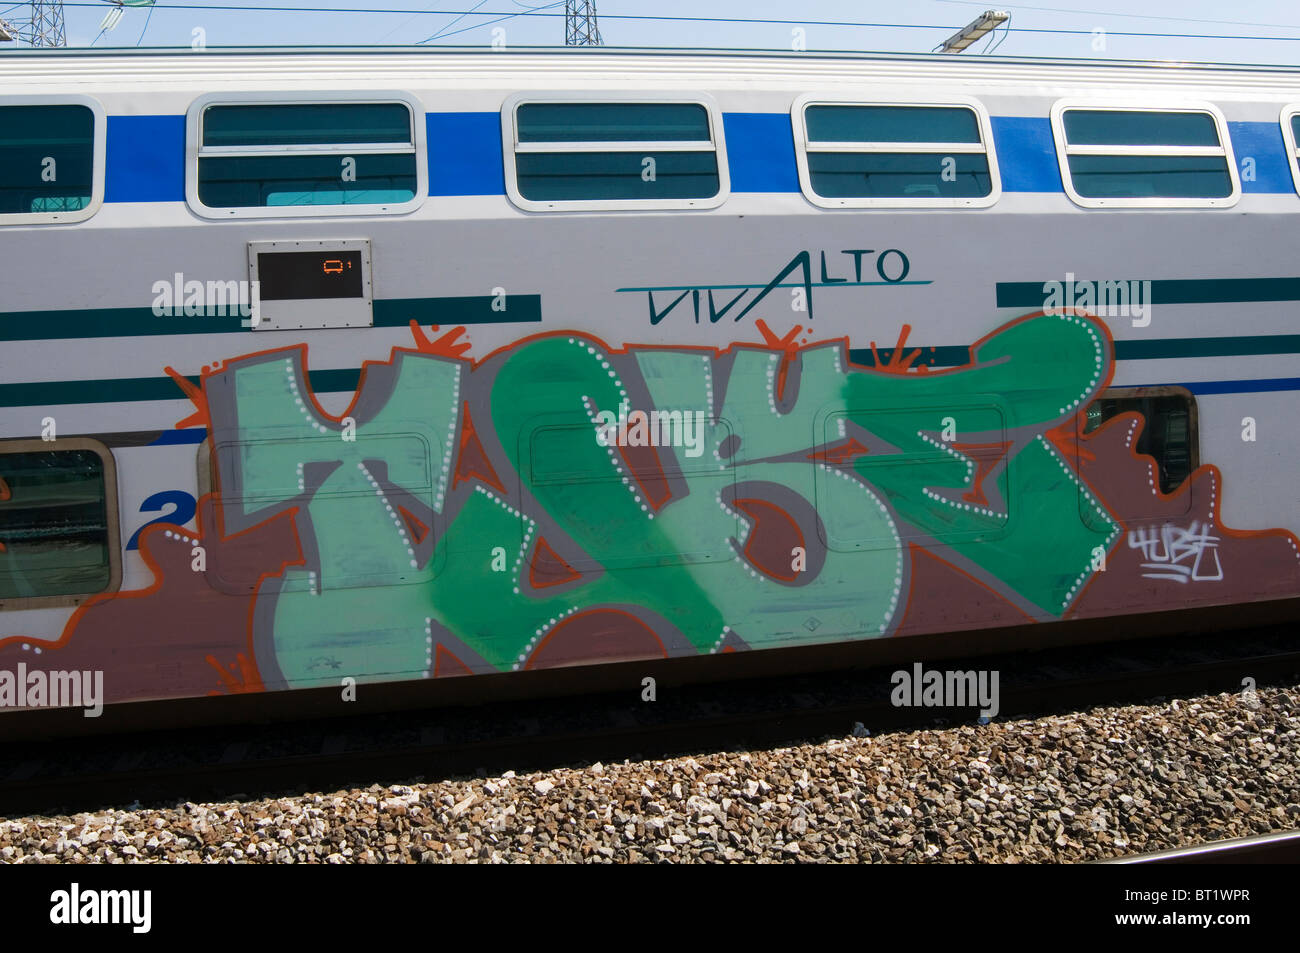 Graffiti Art Artist Street Tag Tags Tagging Tagged Spray Paint Painted On A Train Carriage Carriages Trains Covered In Vandal Va